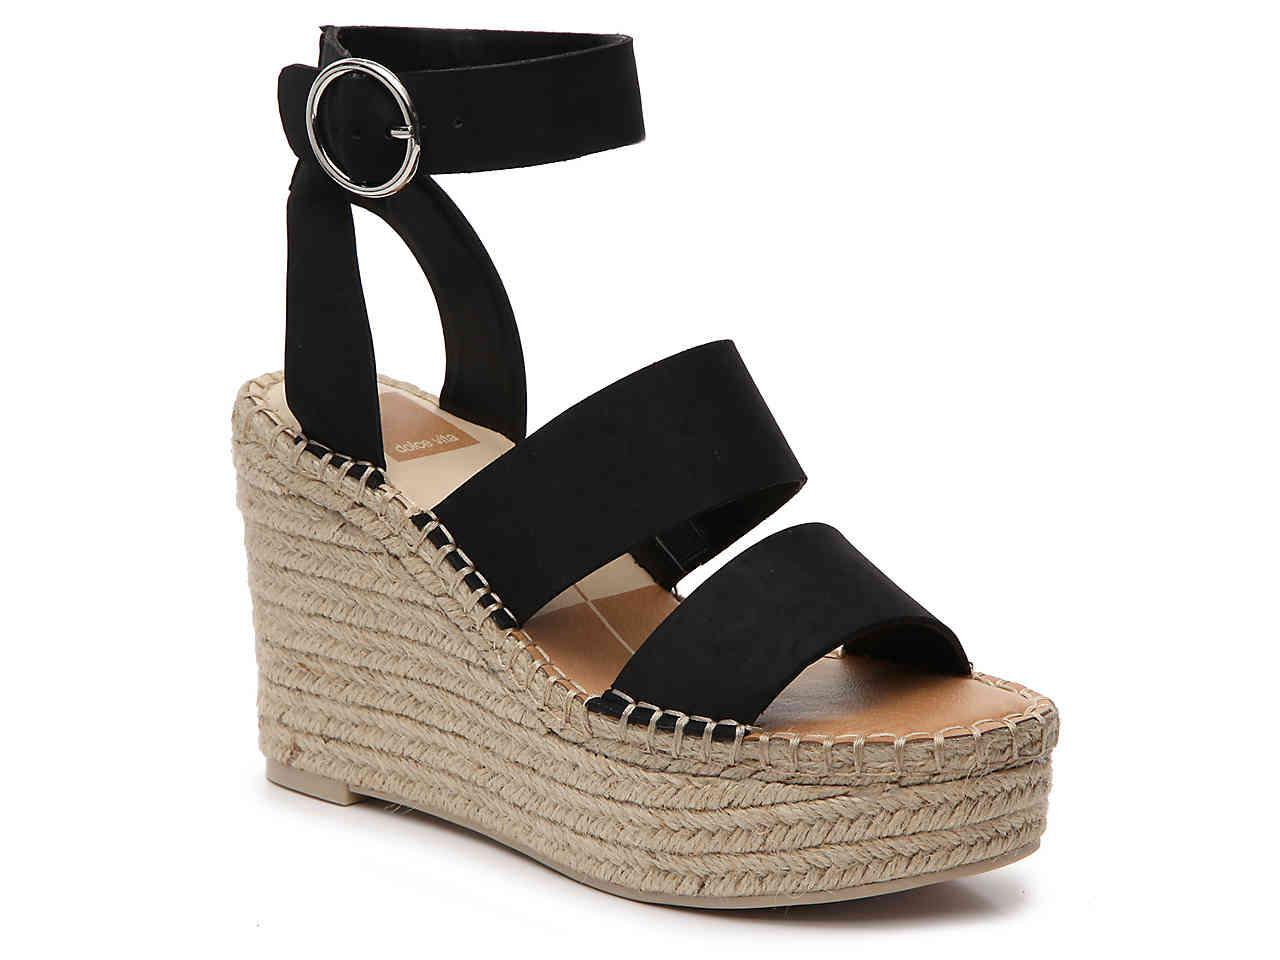 f3ed4afb5c1 Lyst - Dolce Vita Shae Espadrille Wedge Sandal in Black - Save 22%